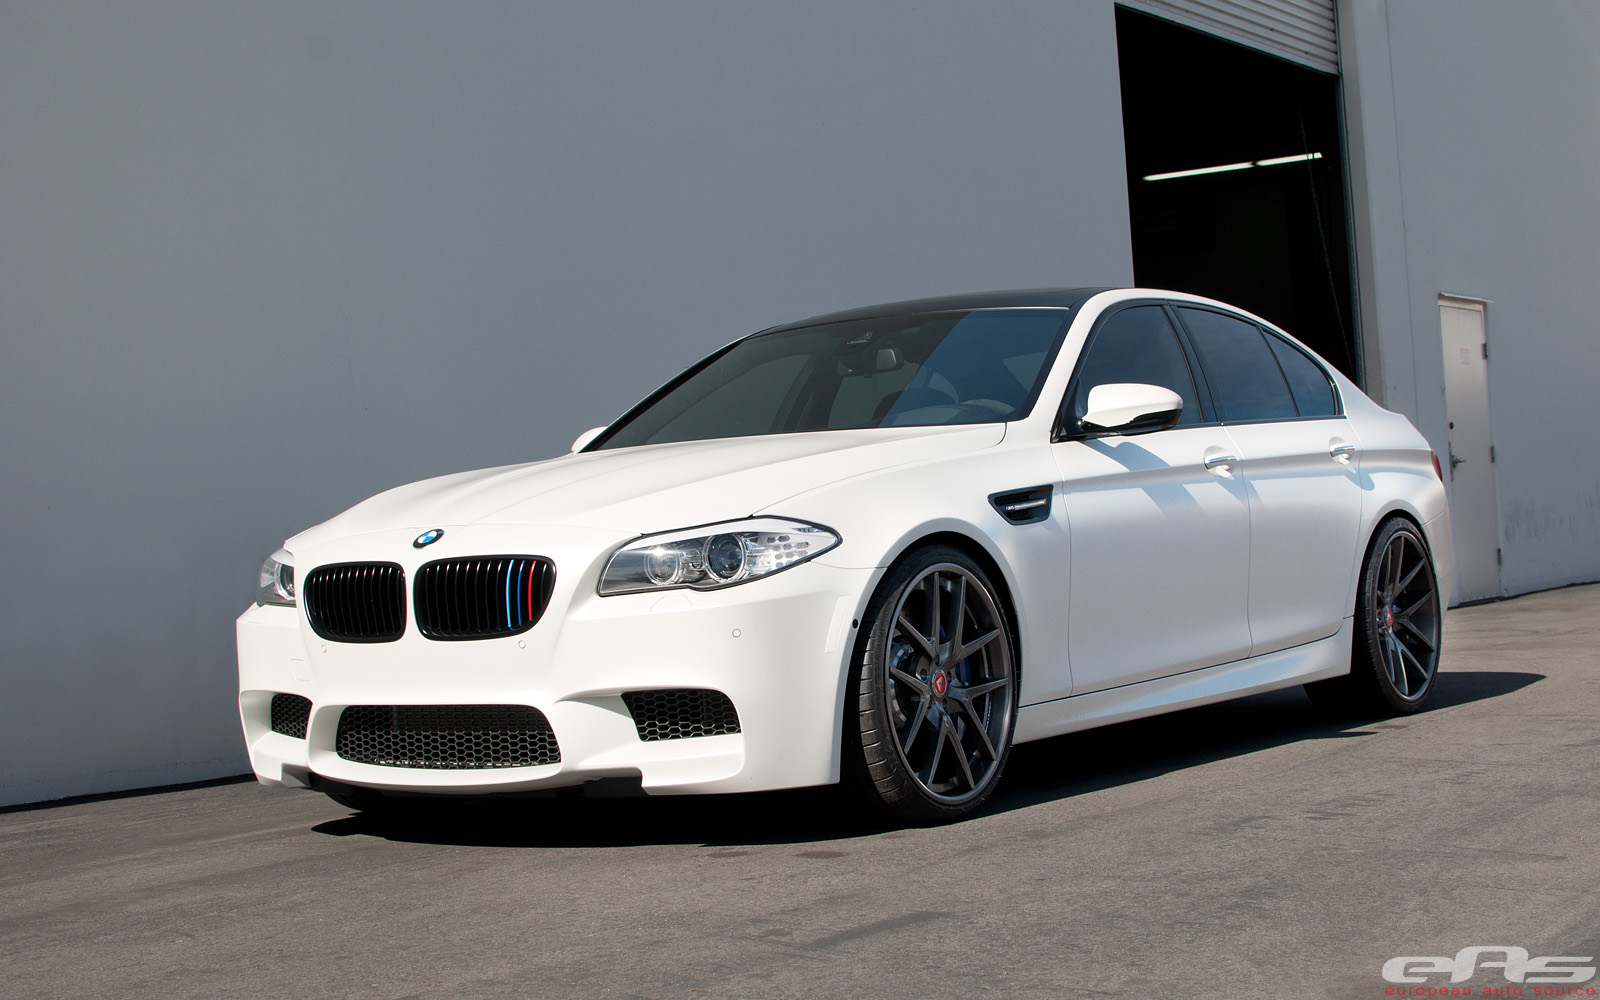 Frozen White BMW F10 M5 Vorsteiner VS-310 Wheels 01 by eas